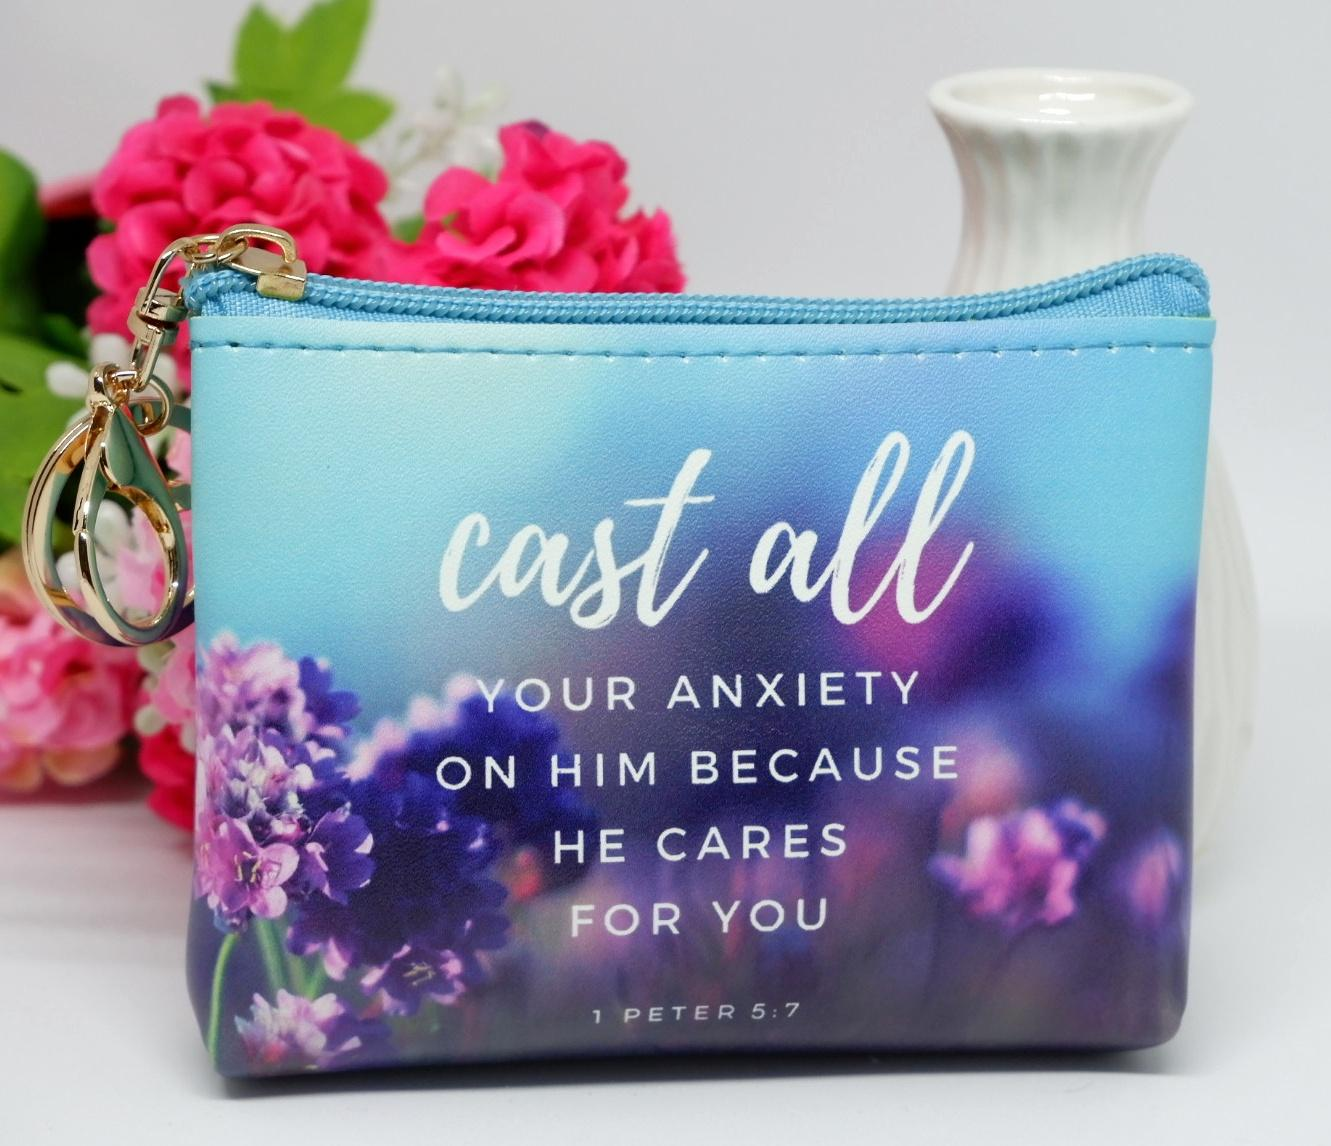 Coin Purse with Bible Verse / Scripture - Cast all your anxiety on him  because he cares for you  1 Peter 5:7